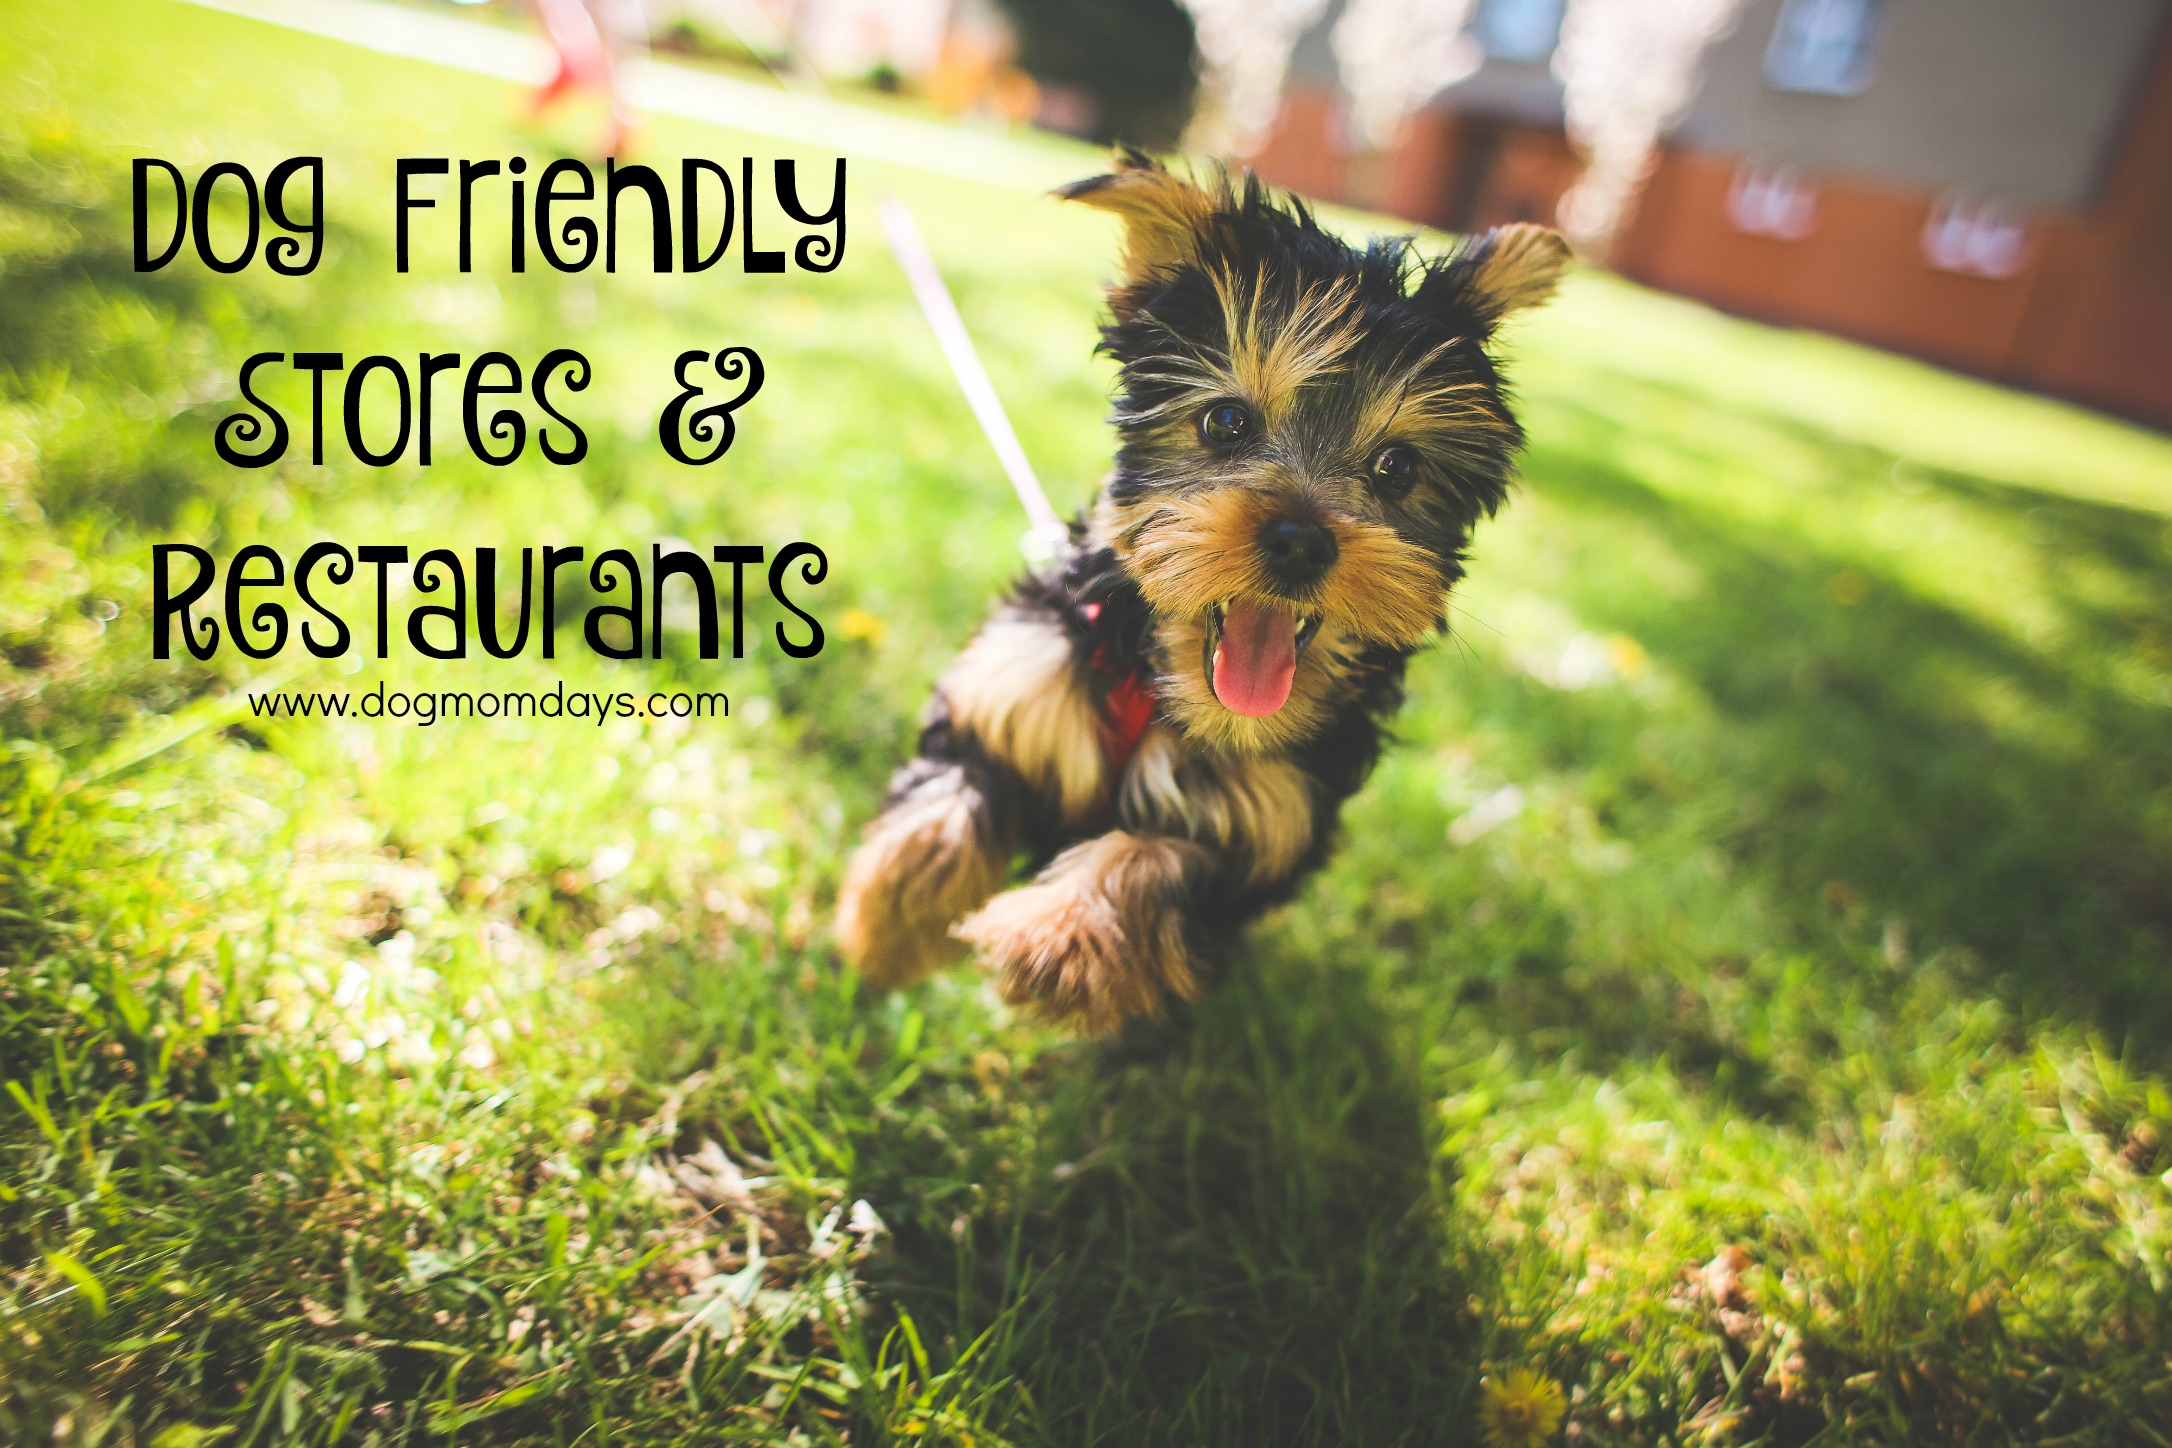 dog friendly stores and restaurants